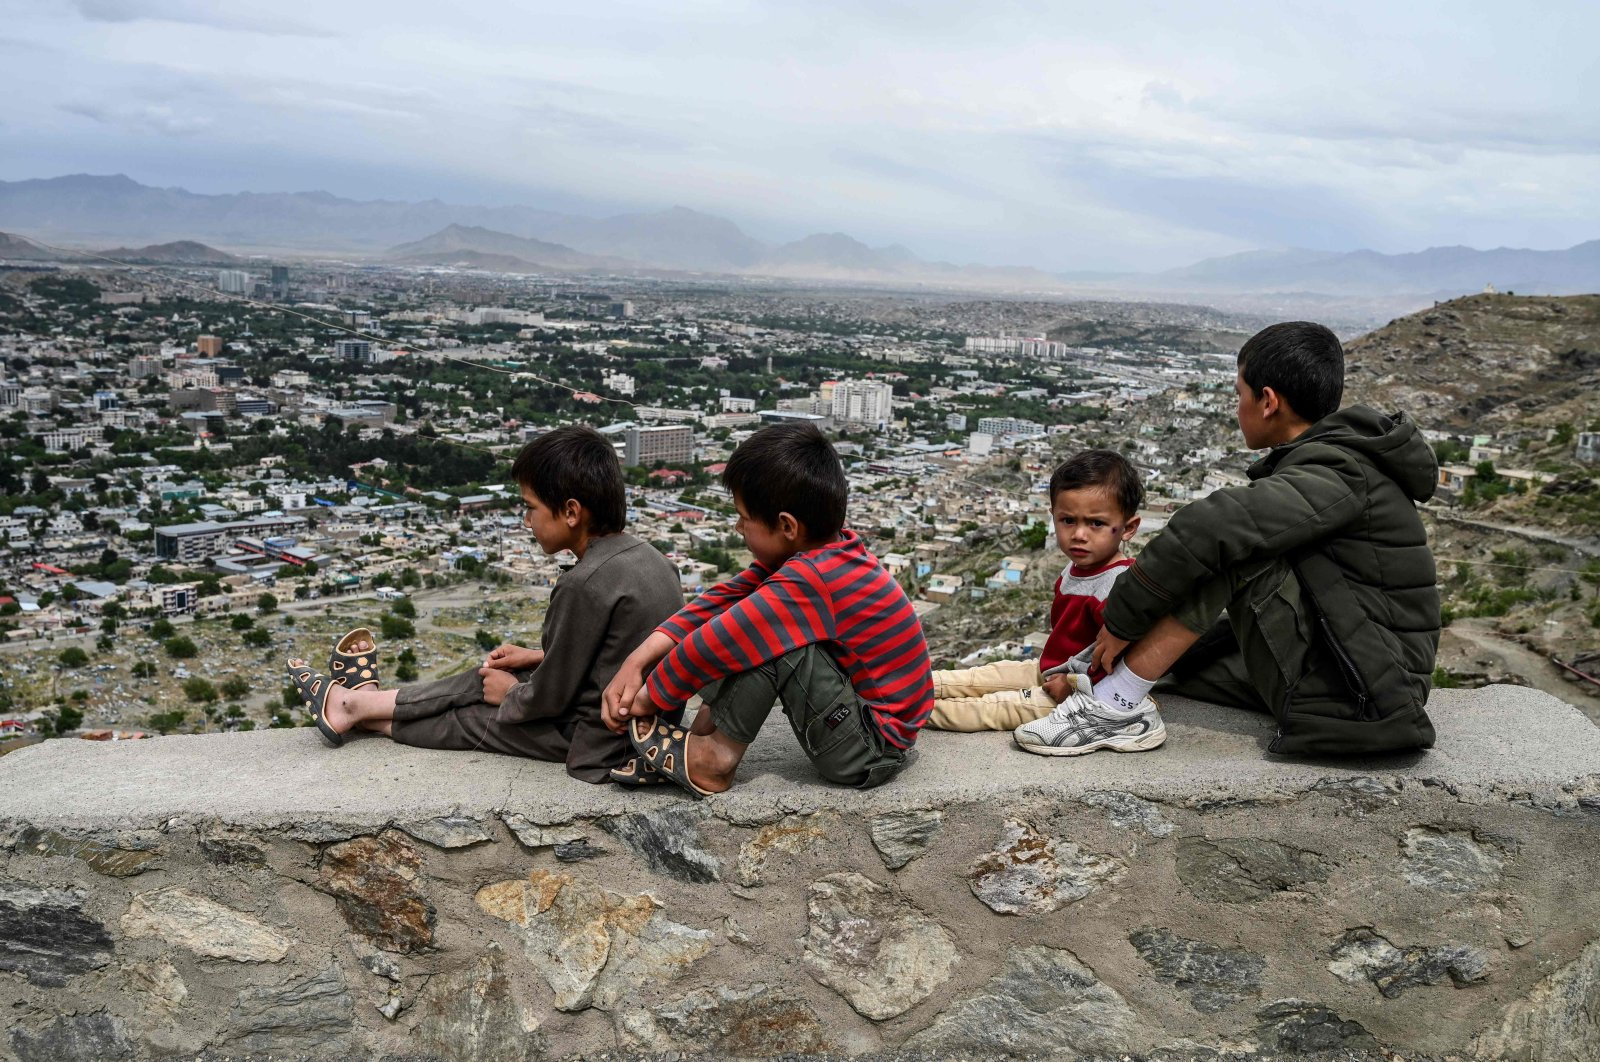 Children sit on a wall overlooking the city of Kabul, Afghanistan, May 17, 2020. (AFP Photo)